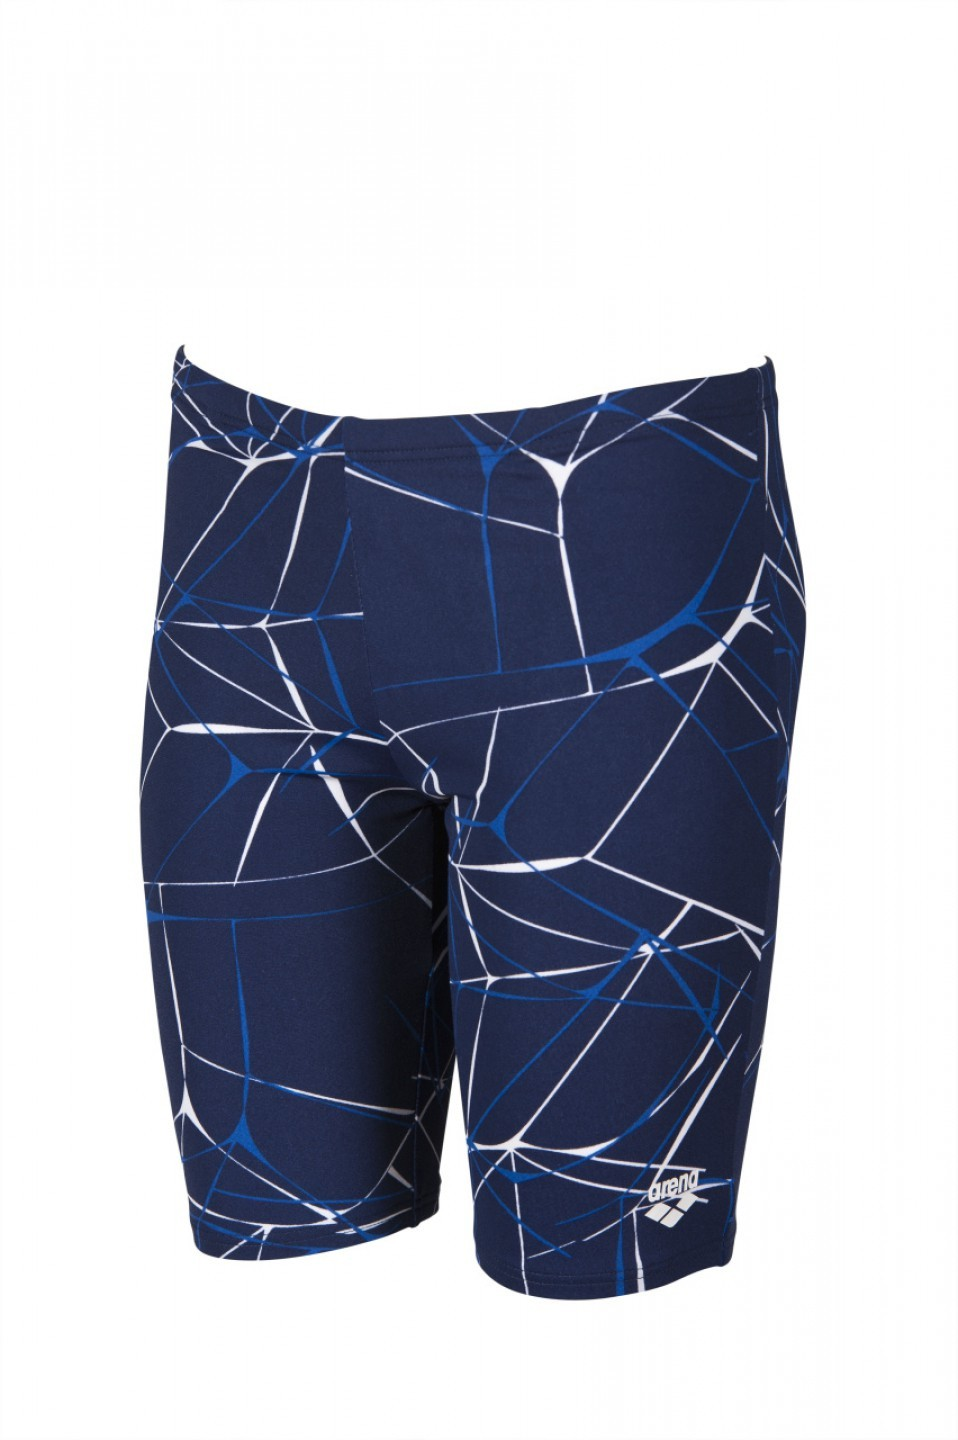 Arena jongens jammer Water JR navy-royal